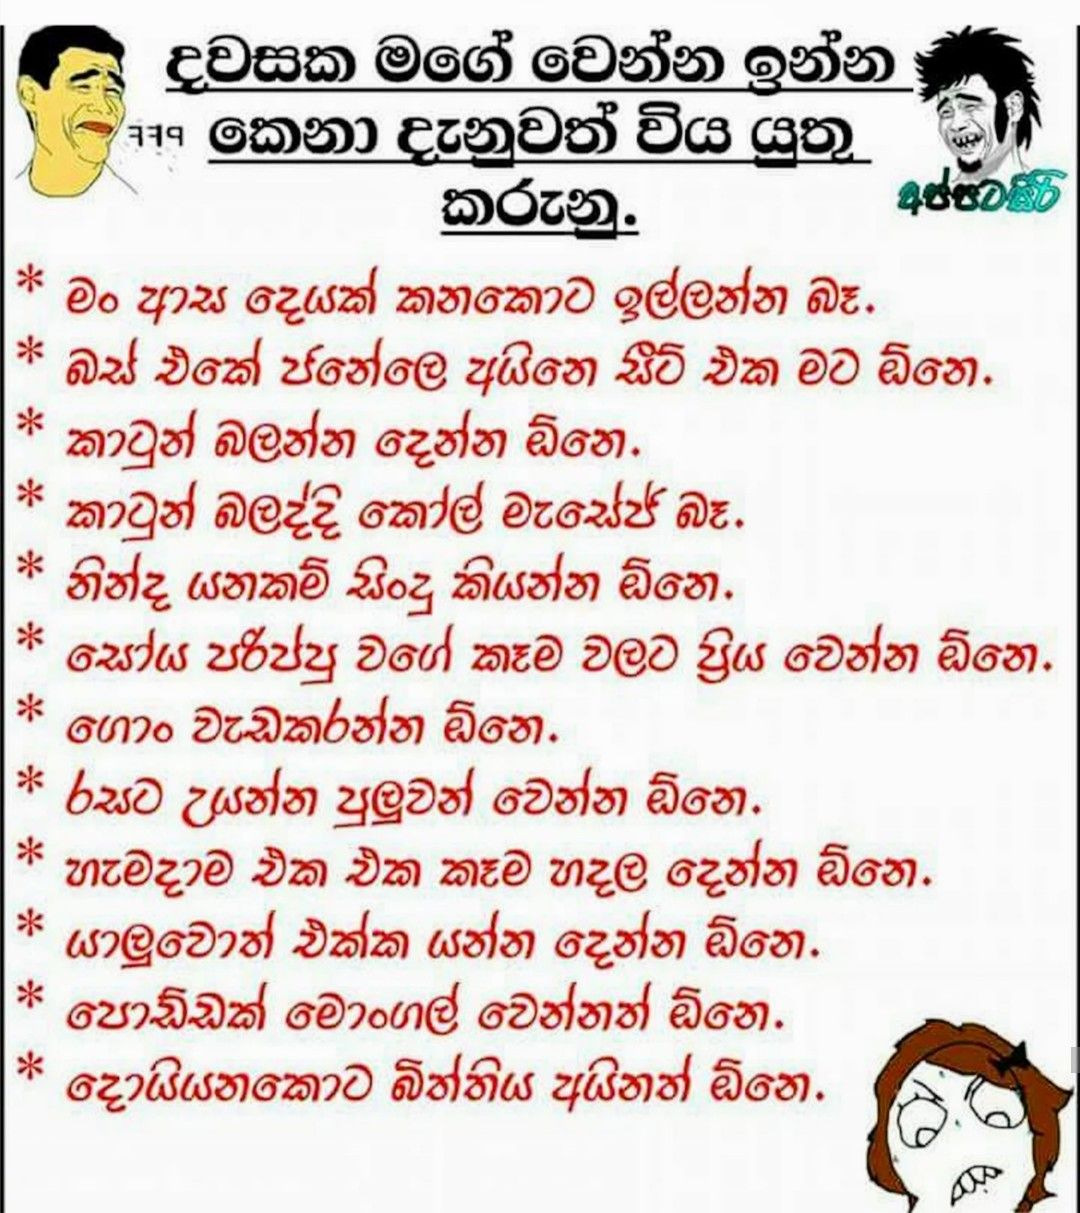 Pin By Farha Nazeer On Lankan Memes Jokes Quotes Friends Quotes Funny Friends Quotes